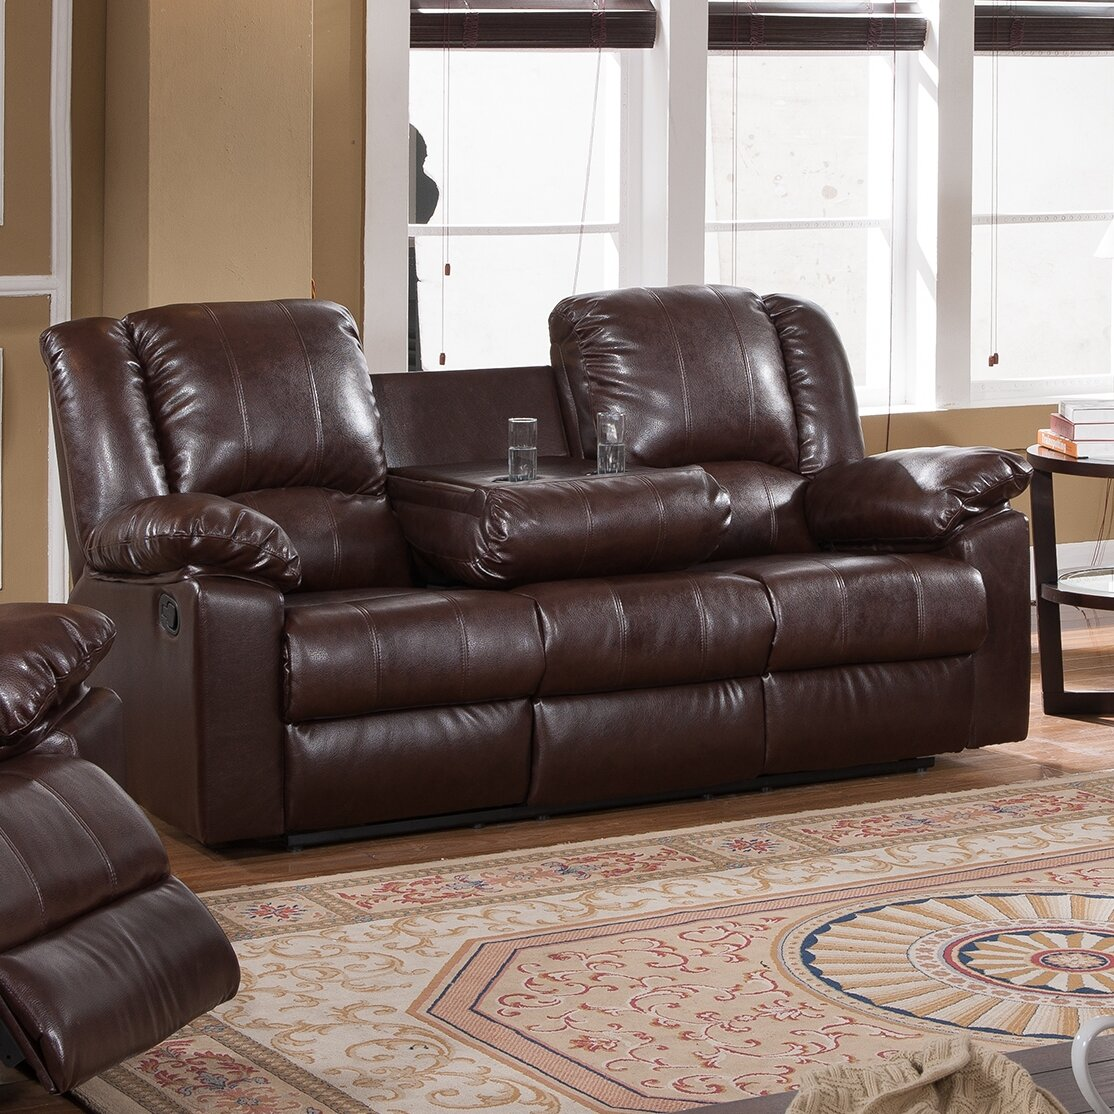 loveseat artangobistro all about sofa cup kinds reclining holders design of buy with